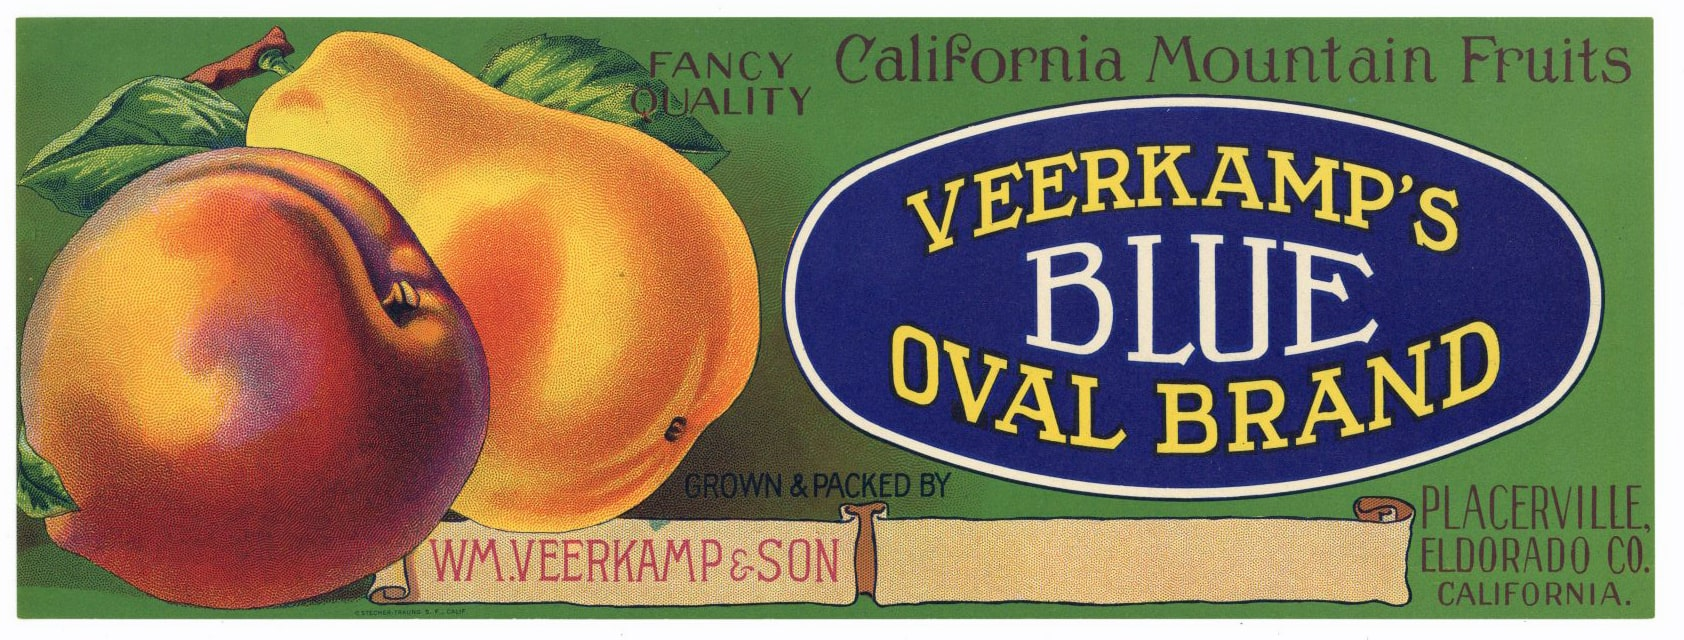 BLUE OVAL Brand Vintage Fruit Crate Label (LS1172)